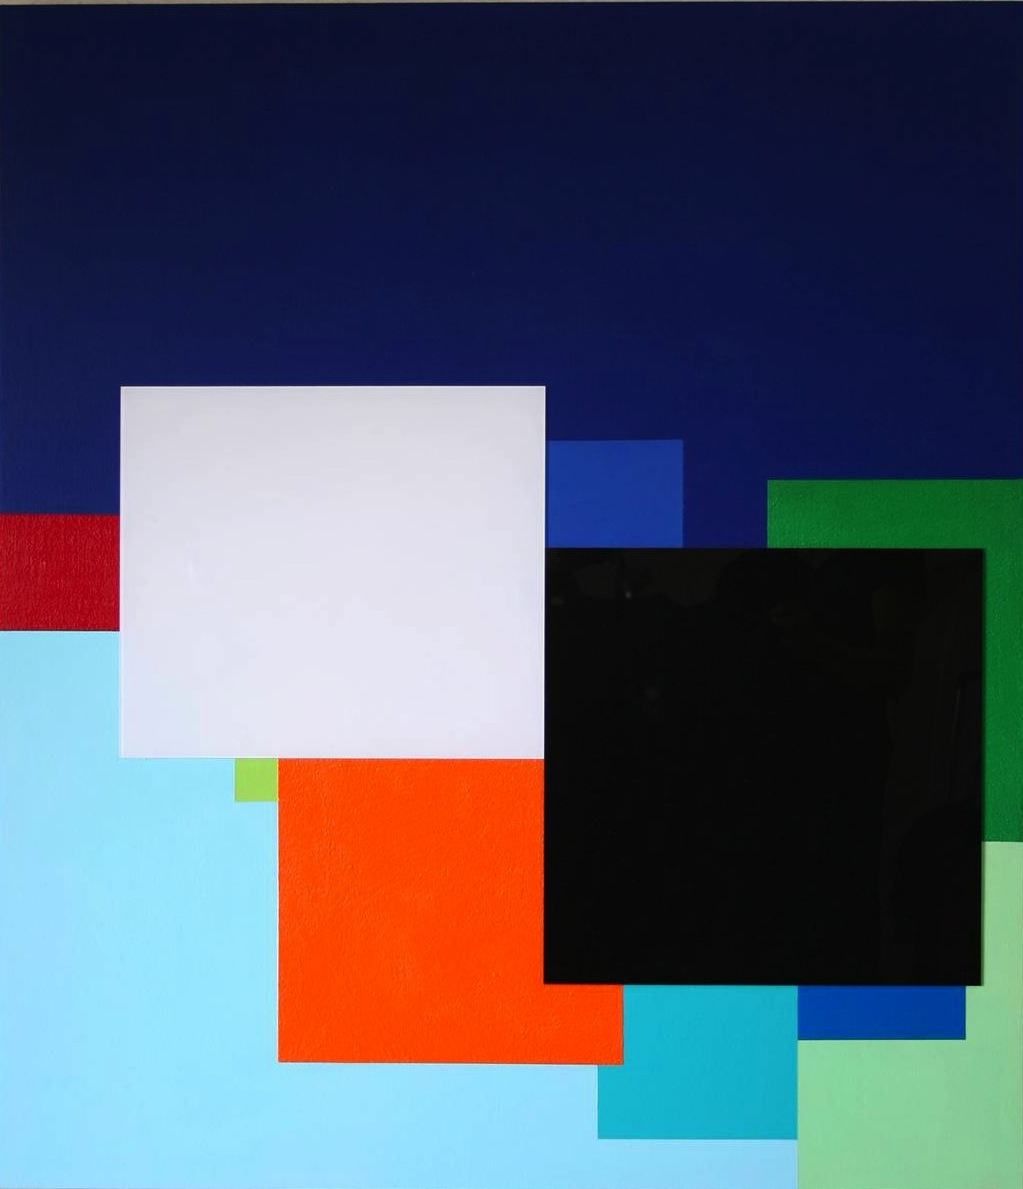 Marco Casentini, Inside the Blue, Acrylic/Perspex on canvas 44 x 38 inches, 2011